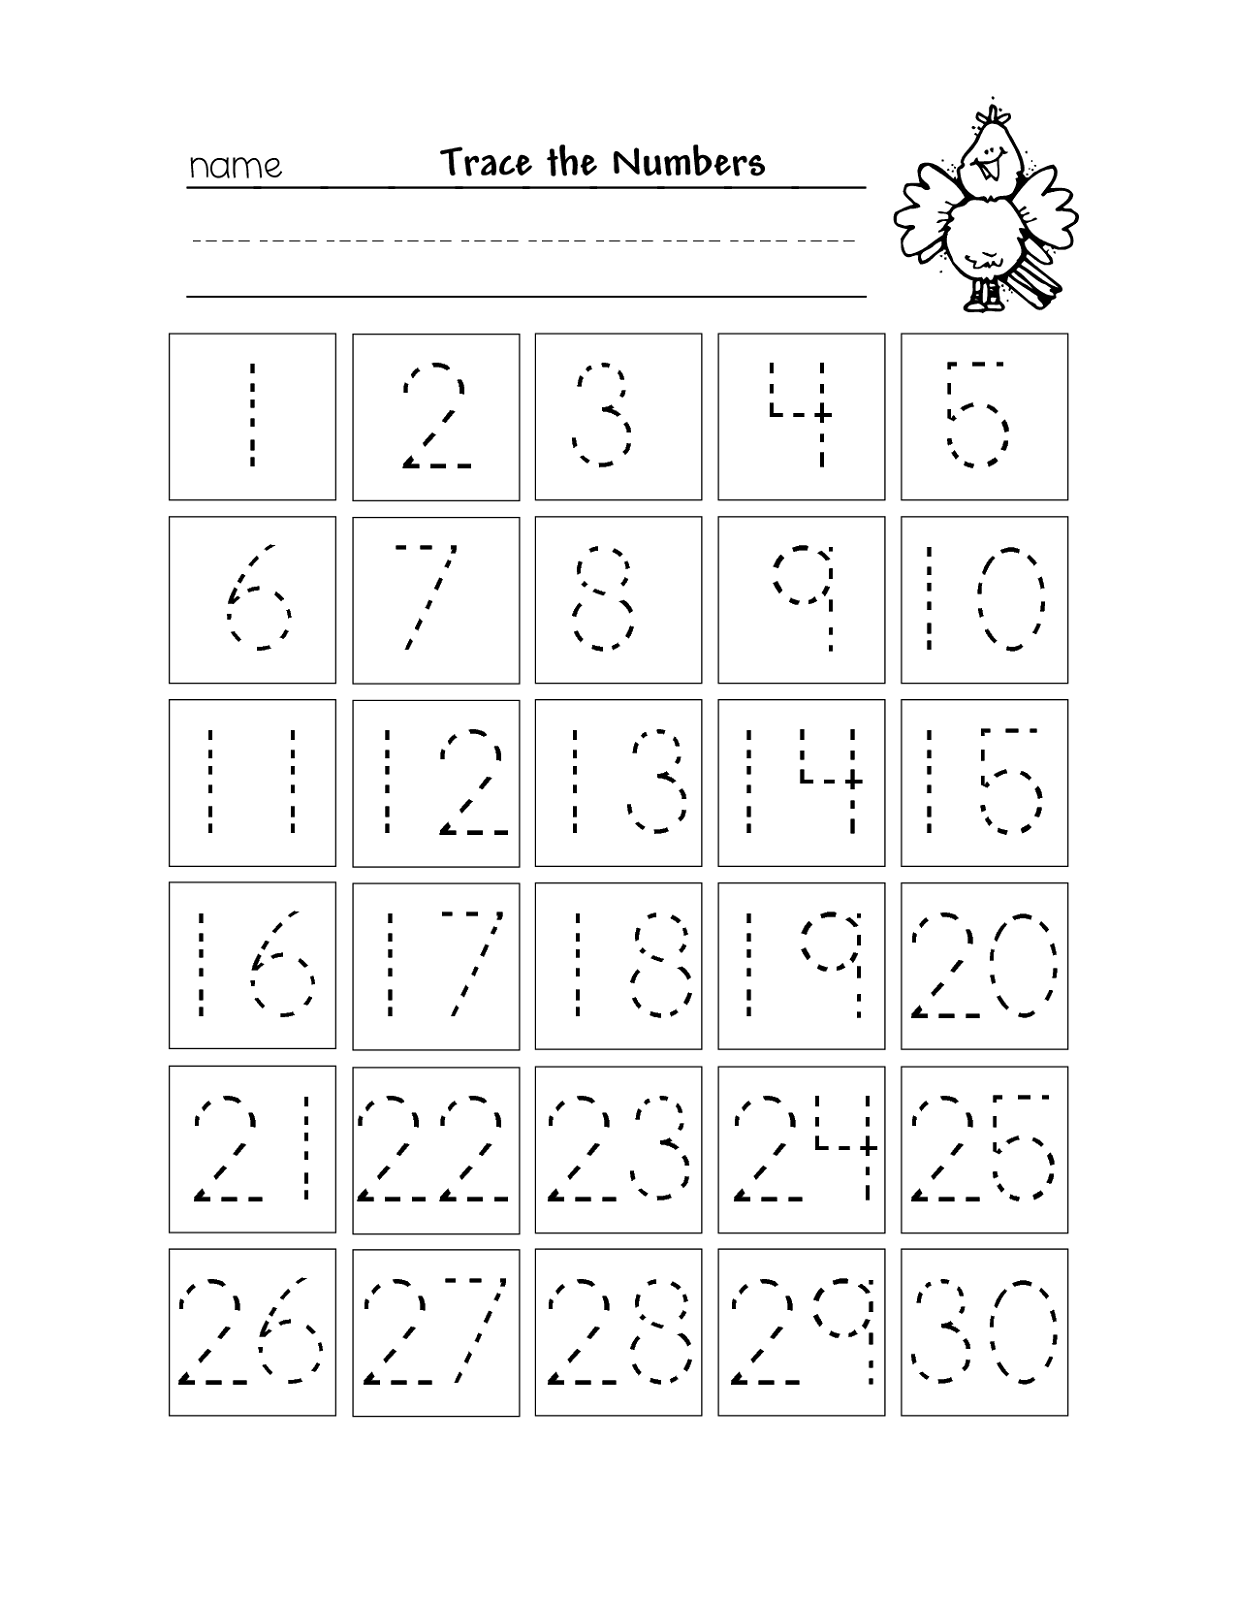 trace-the-numbers-1-30